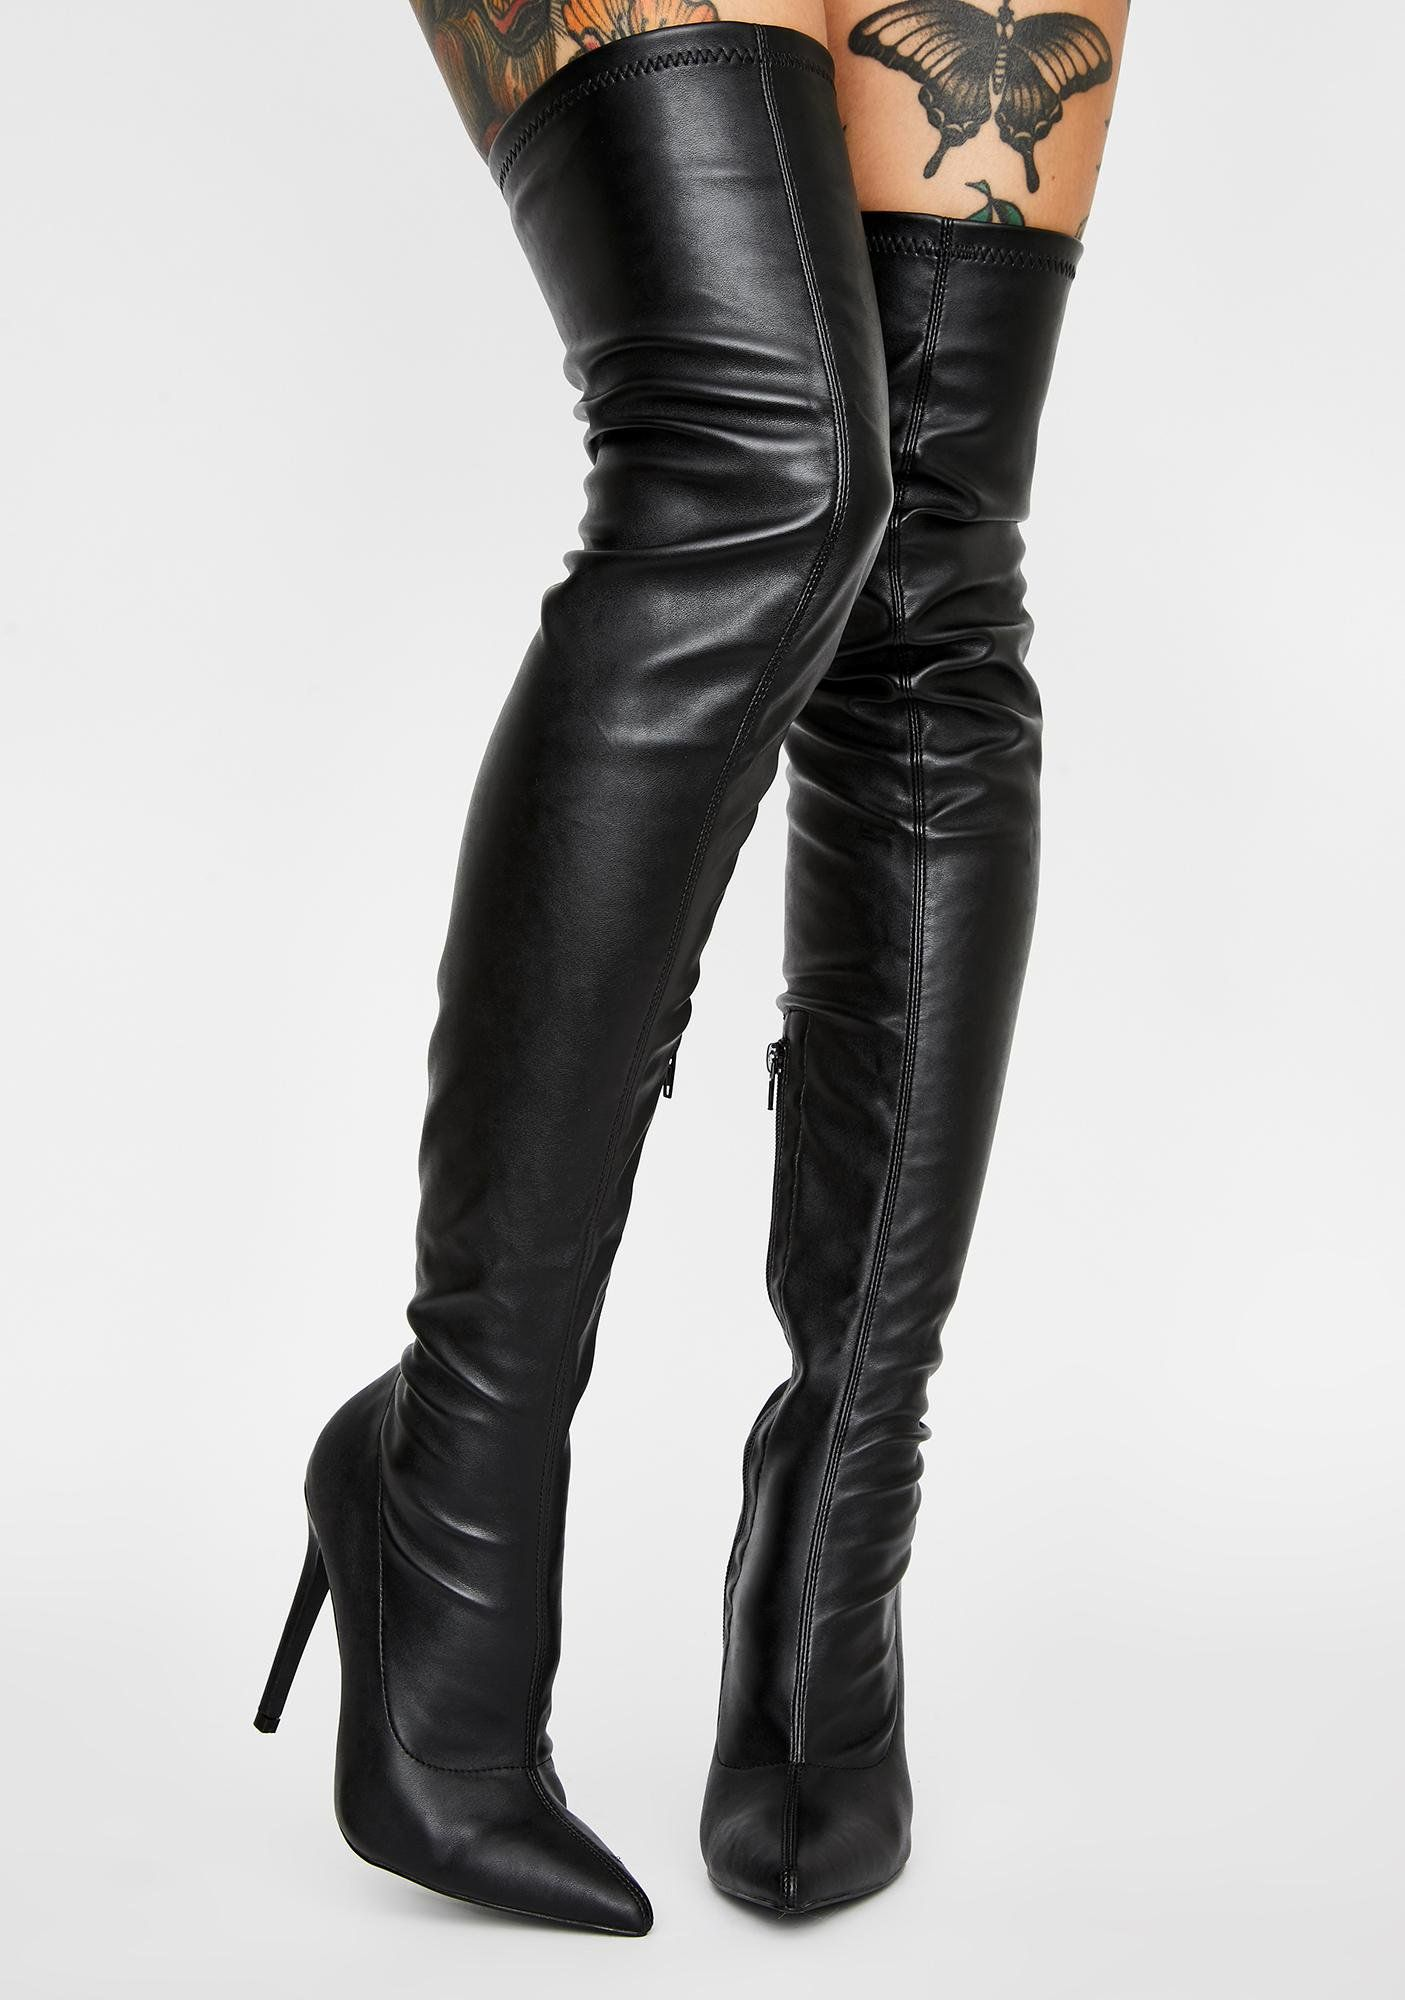 Night Draw The Line Thigh High Boots Thigh high boots